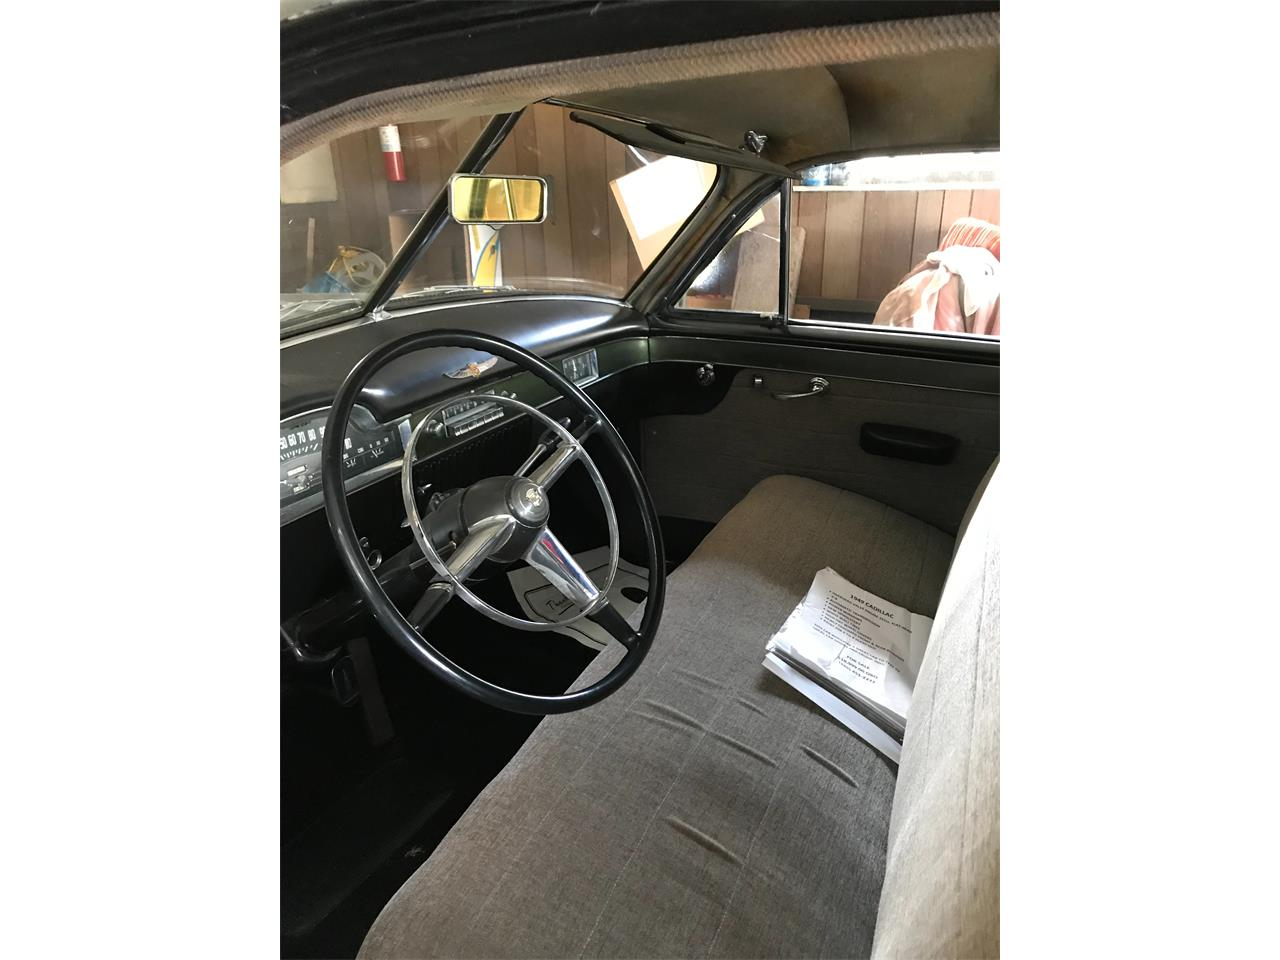 Large Picture of Classic '49 Cadillac 4-Dr Sedan - $17,500.00 Offered by a Private Seller - QAJD